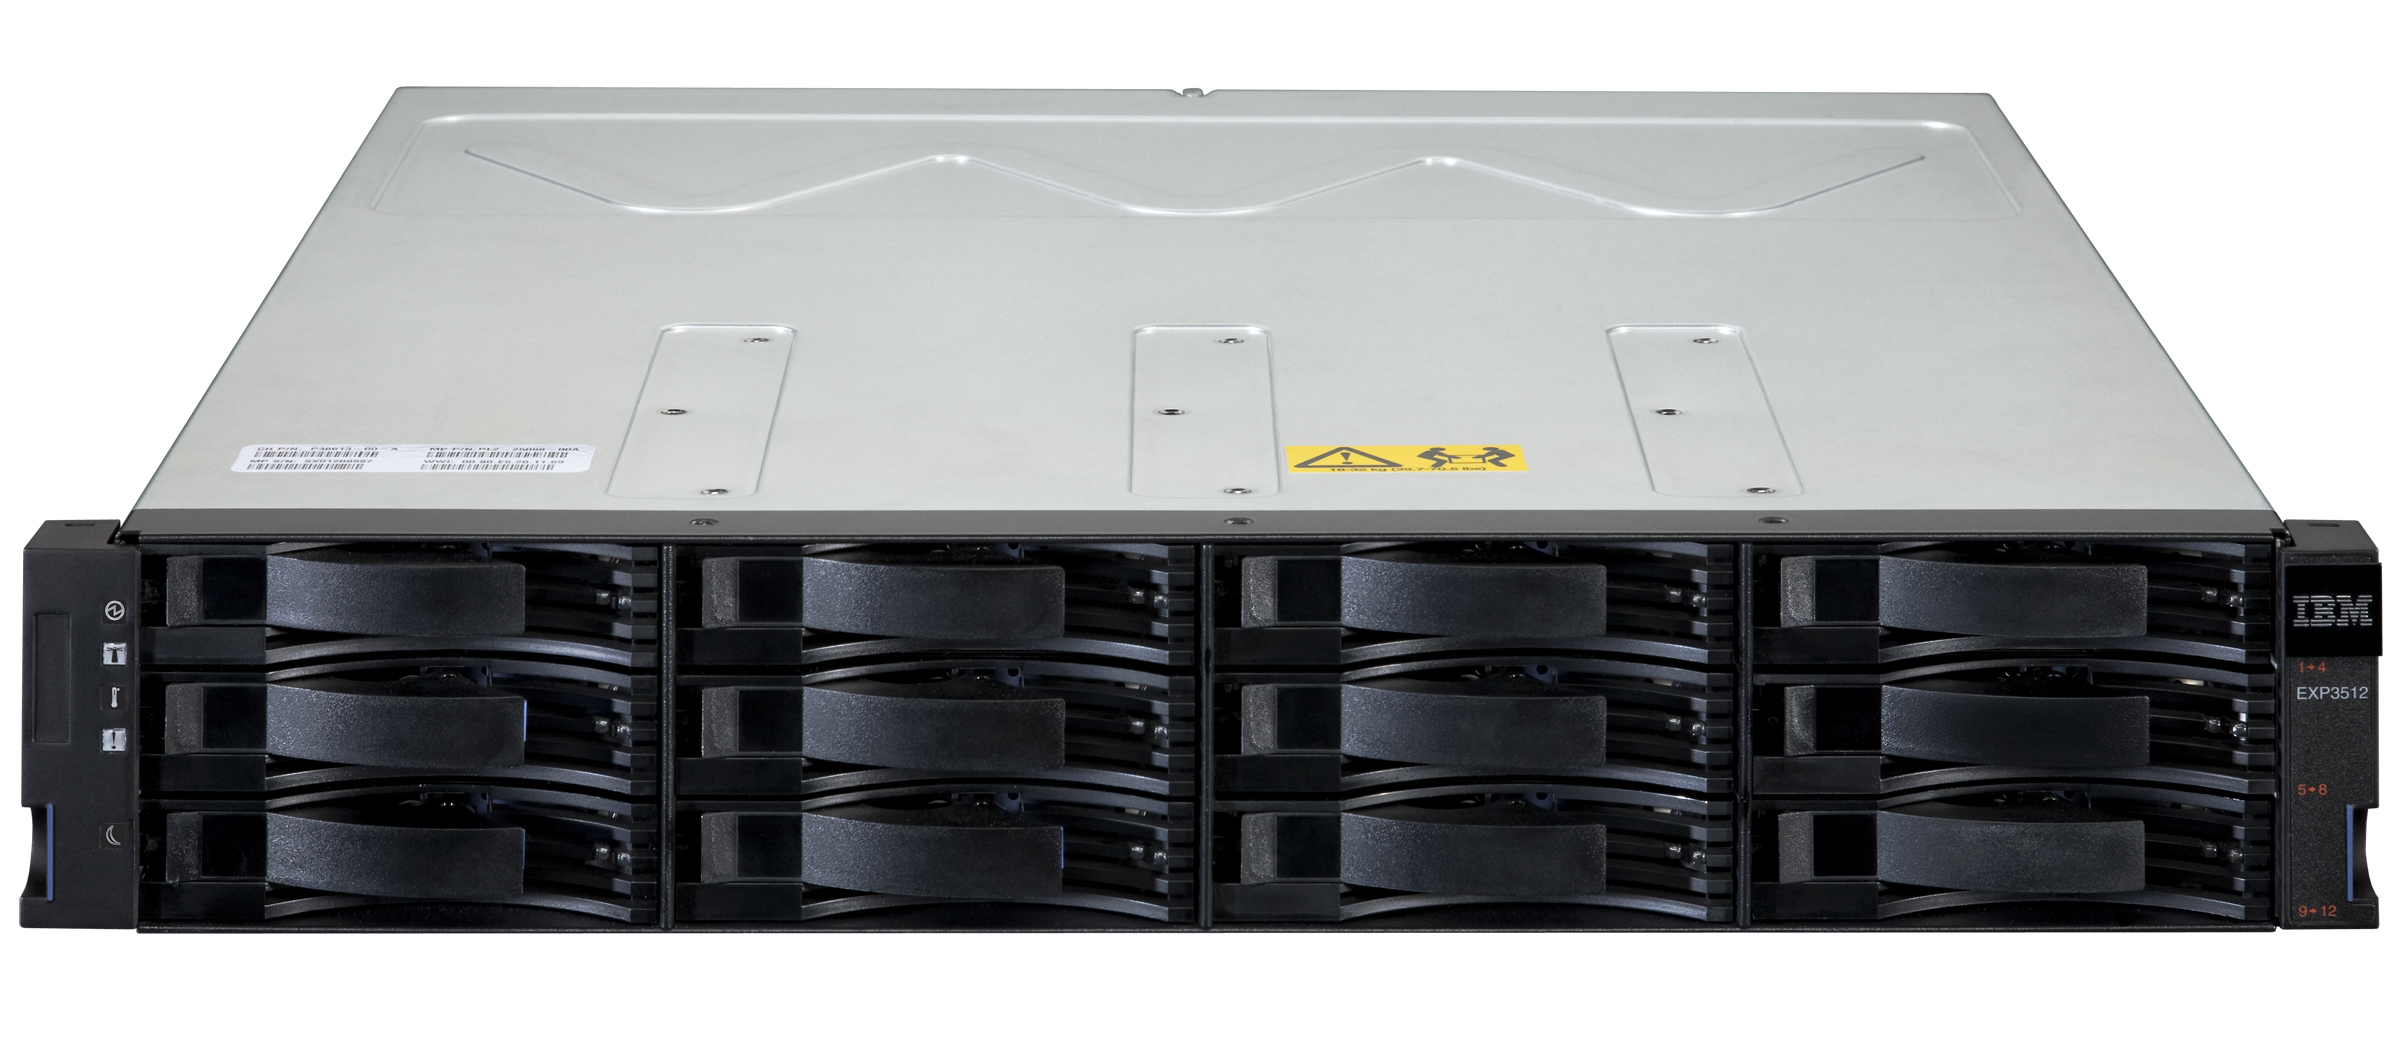 JBOD система хранения данных (СХД) IBM System Storage EXP3512 Express Storage Enclosure - корпус Rackmount 2U, 12 отсеков LFF 3.5